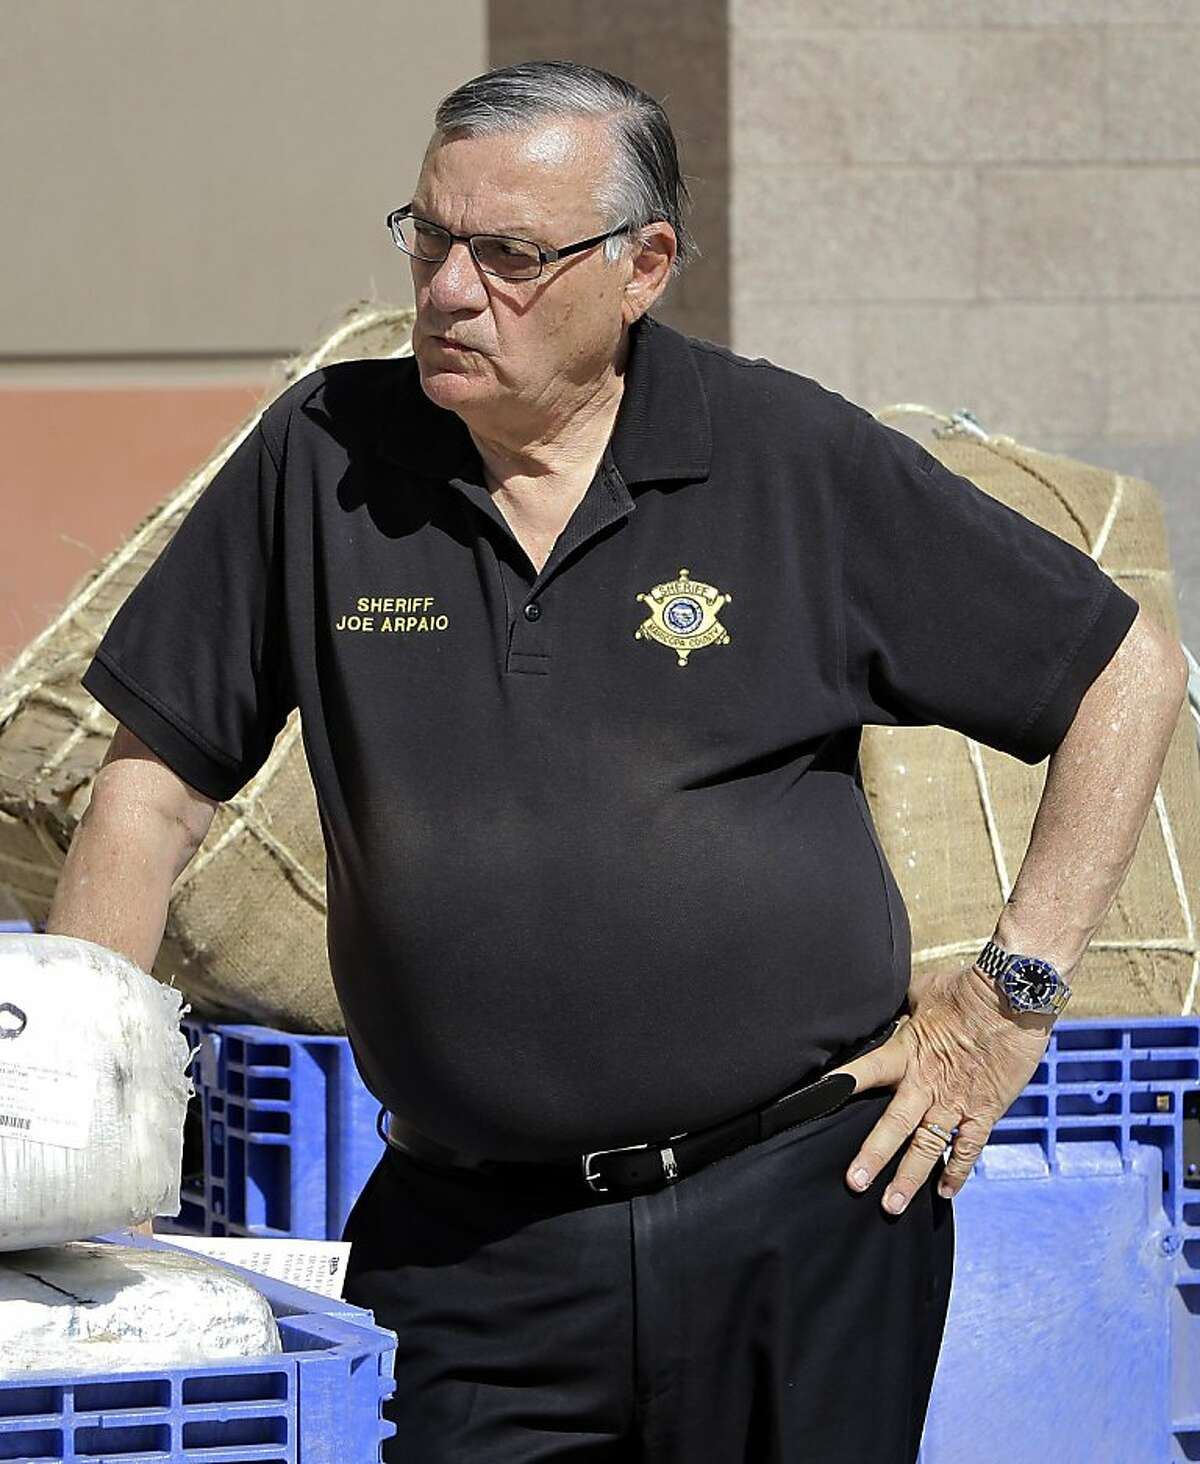 FILE - In this May 12, 2011 file photo, Maricopa County Sheriff Joe Arpaio, showcasing 2,300 lbs of seized marijuana, waits to address the media outside the Sheriff's training center in Phoenix. More than 400 sex-crimes reported to Arpaio's office during a three-year period ending in 2007, including dozens of alleged child molestations, were inadequately investigated and in some instances were not worked at all, according to current and former police officers familiar with the cases. (AP Photo/Matt York, File) Ran on: 12-05-2011 Photo caption Dummy text goes here. Dummy text goes here. Dummy text goes here. Dummy text goes here. Dummy text goes here. Dummy text goes here. Dummy text goes here. Dummy text goes here.###Photo: sheriff05_ph21305072000AP###Live Caption:FILE - In this May 12, 2011 file photo, Maricopa County Sheriff Joe Arpaio, showcasing 2,300 lbs of seized marijuana, waits to address the media outside the Sheriff's training center in Phoenix. More than 400 sex-crimes reported to Arpaio's office during a three-year period ending in 2007, including dozens of alleged child molestations, were inadequately investigated and in some instances were not worked at all, according to current and former police officers familiar with the cases.###Caption History:FILE - In this May 12, 2011 file photo, Maricopa County Sheriff Joe Arpaio, showcasing 2,300 lbs of seized marijuana, waits to address the media outside the Sheriff's training center in Phoenix. More than 400 sex-crimes reported to Arpaio's office during a three-year period ending in 2007, including dozens of alleged child molestations, were inadequately investigated and in some instances were not worked at all, according to current...